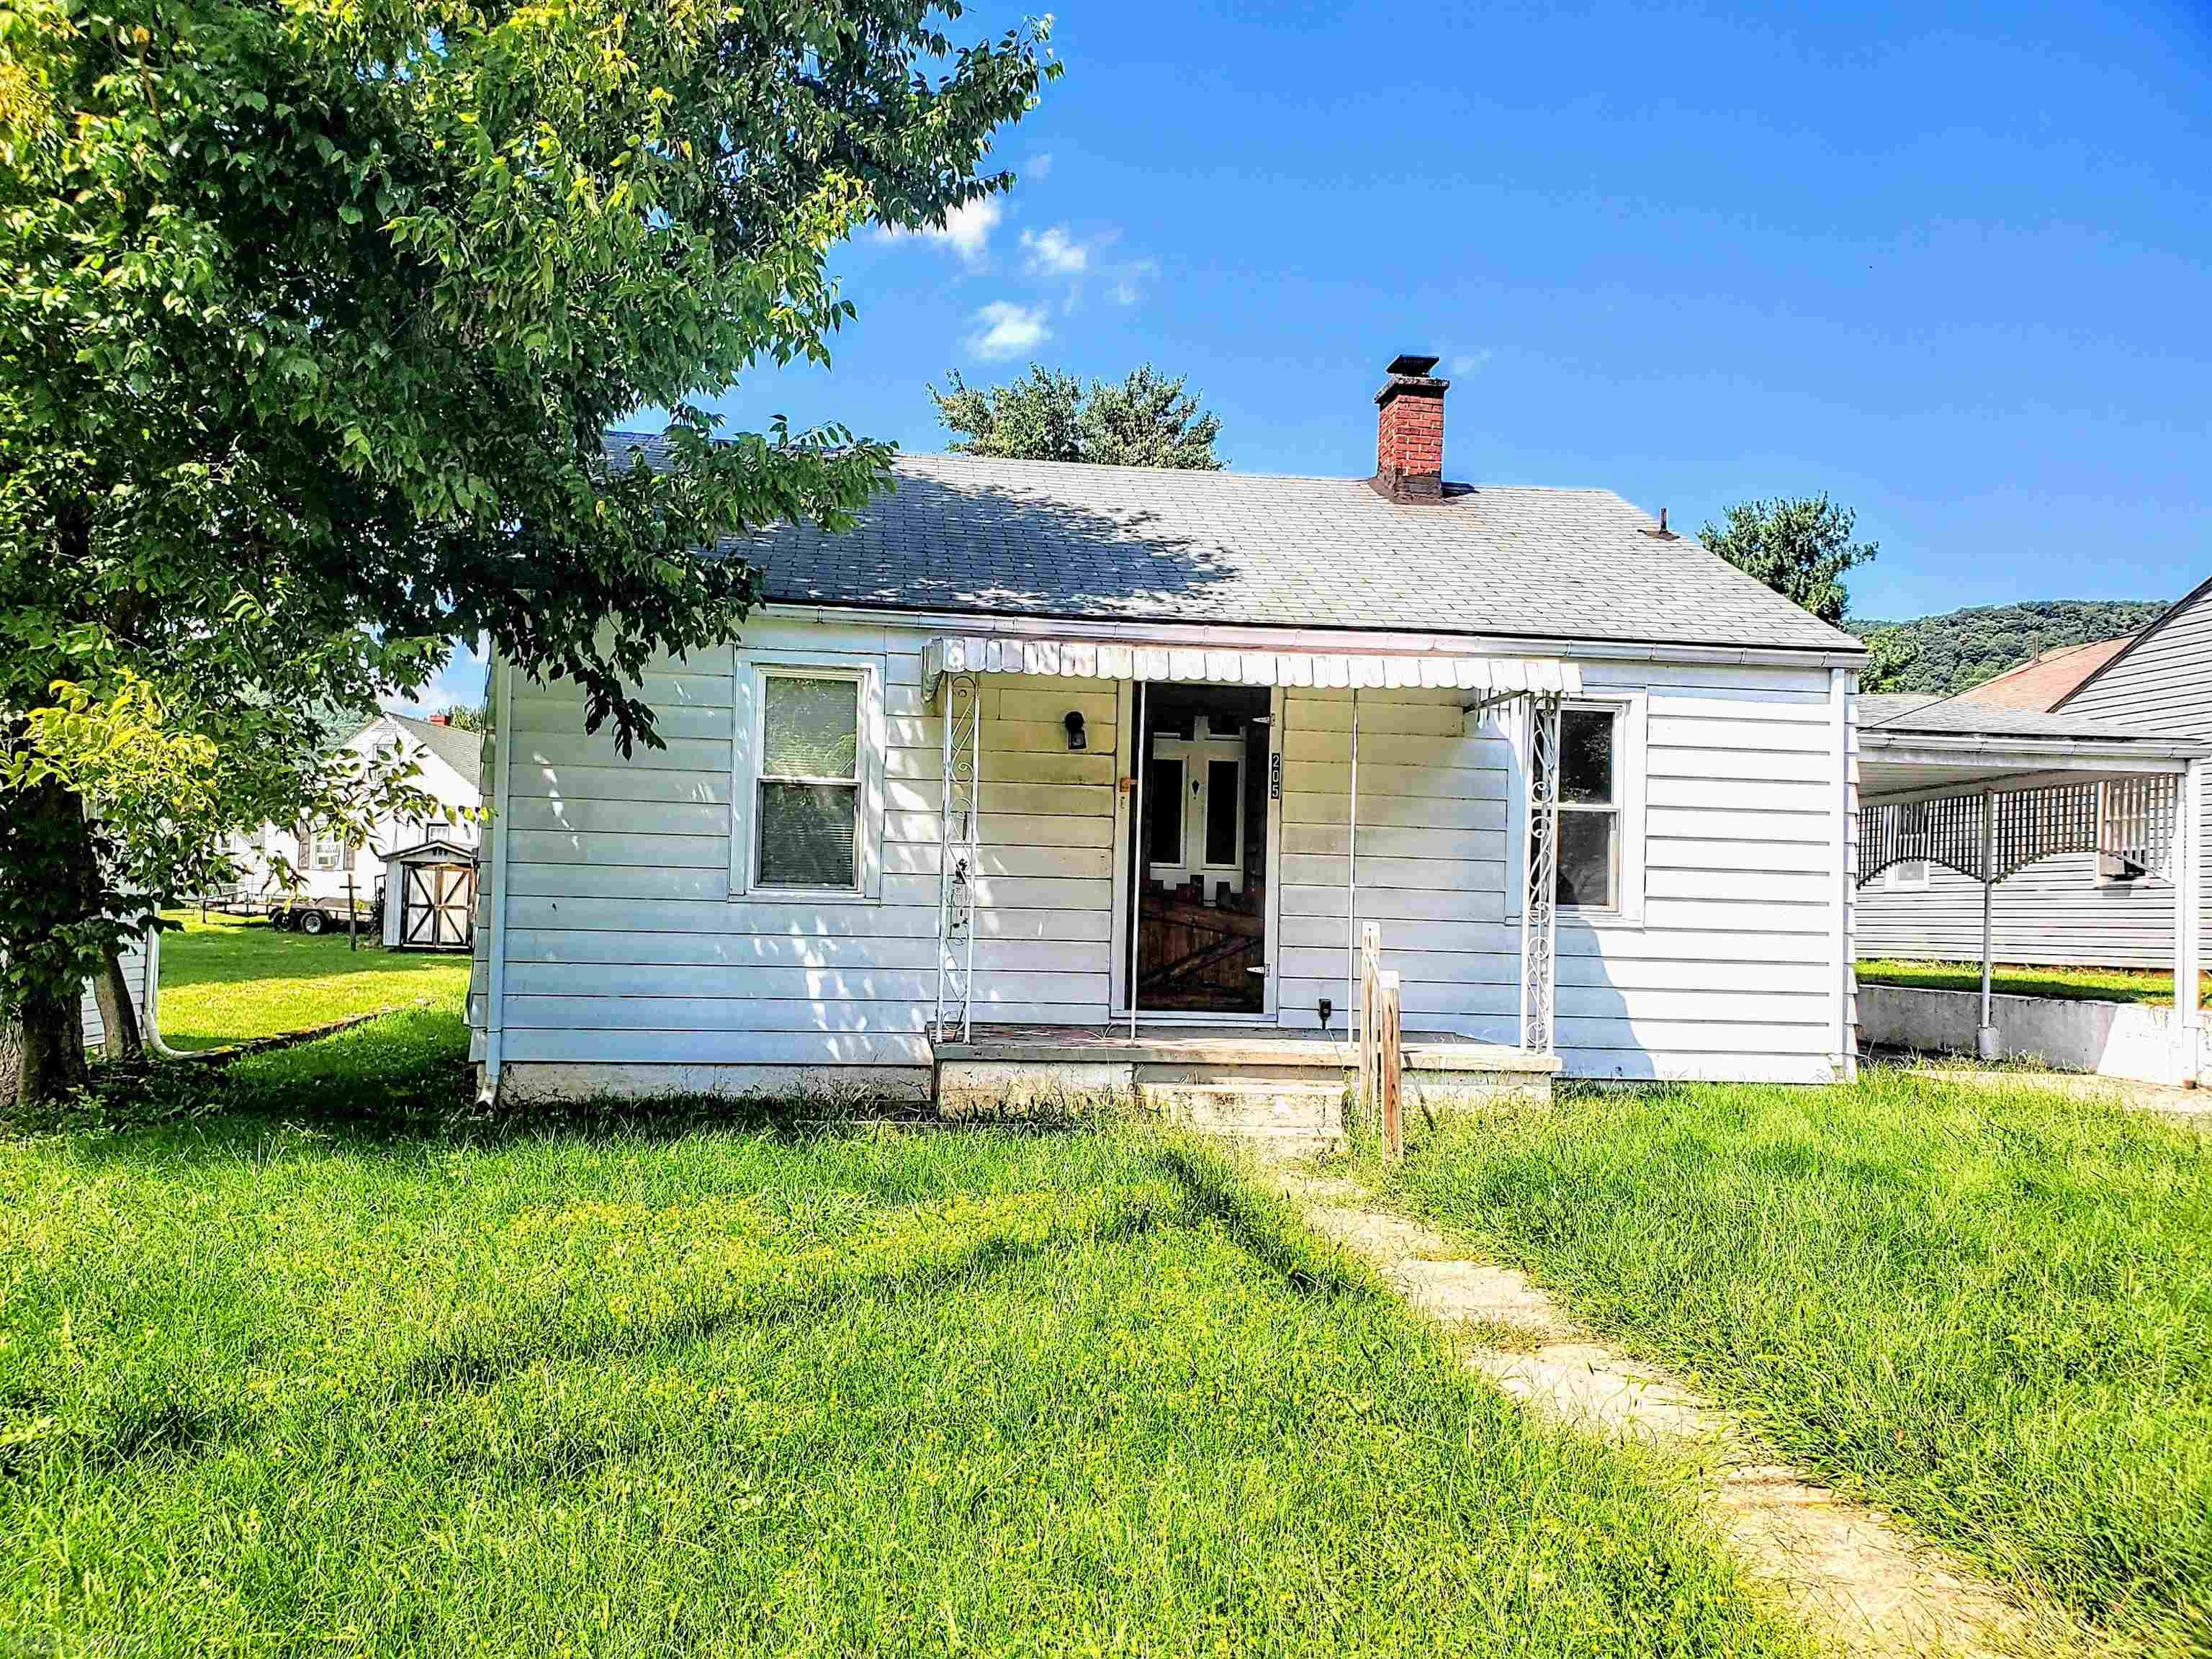 Only 20 minutes to Princeton and Interstate 77 and within walking distance to Narrows High School this spacious 2 bedroom 1 bath would make a wonderful investment opportunity or perfect for the first time home buyer.